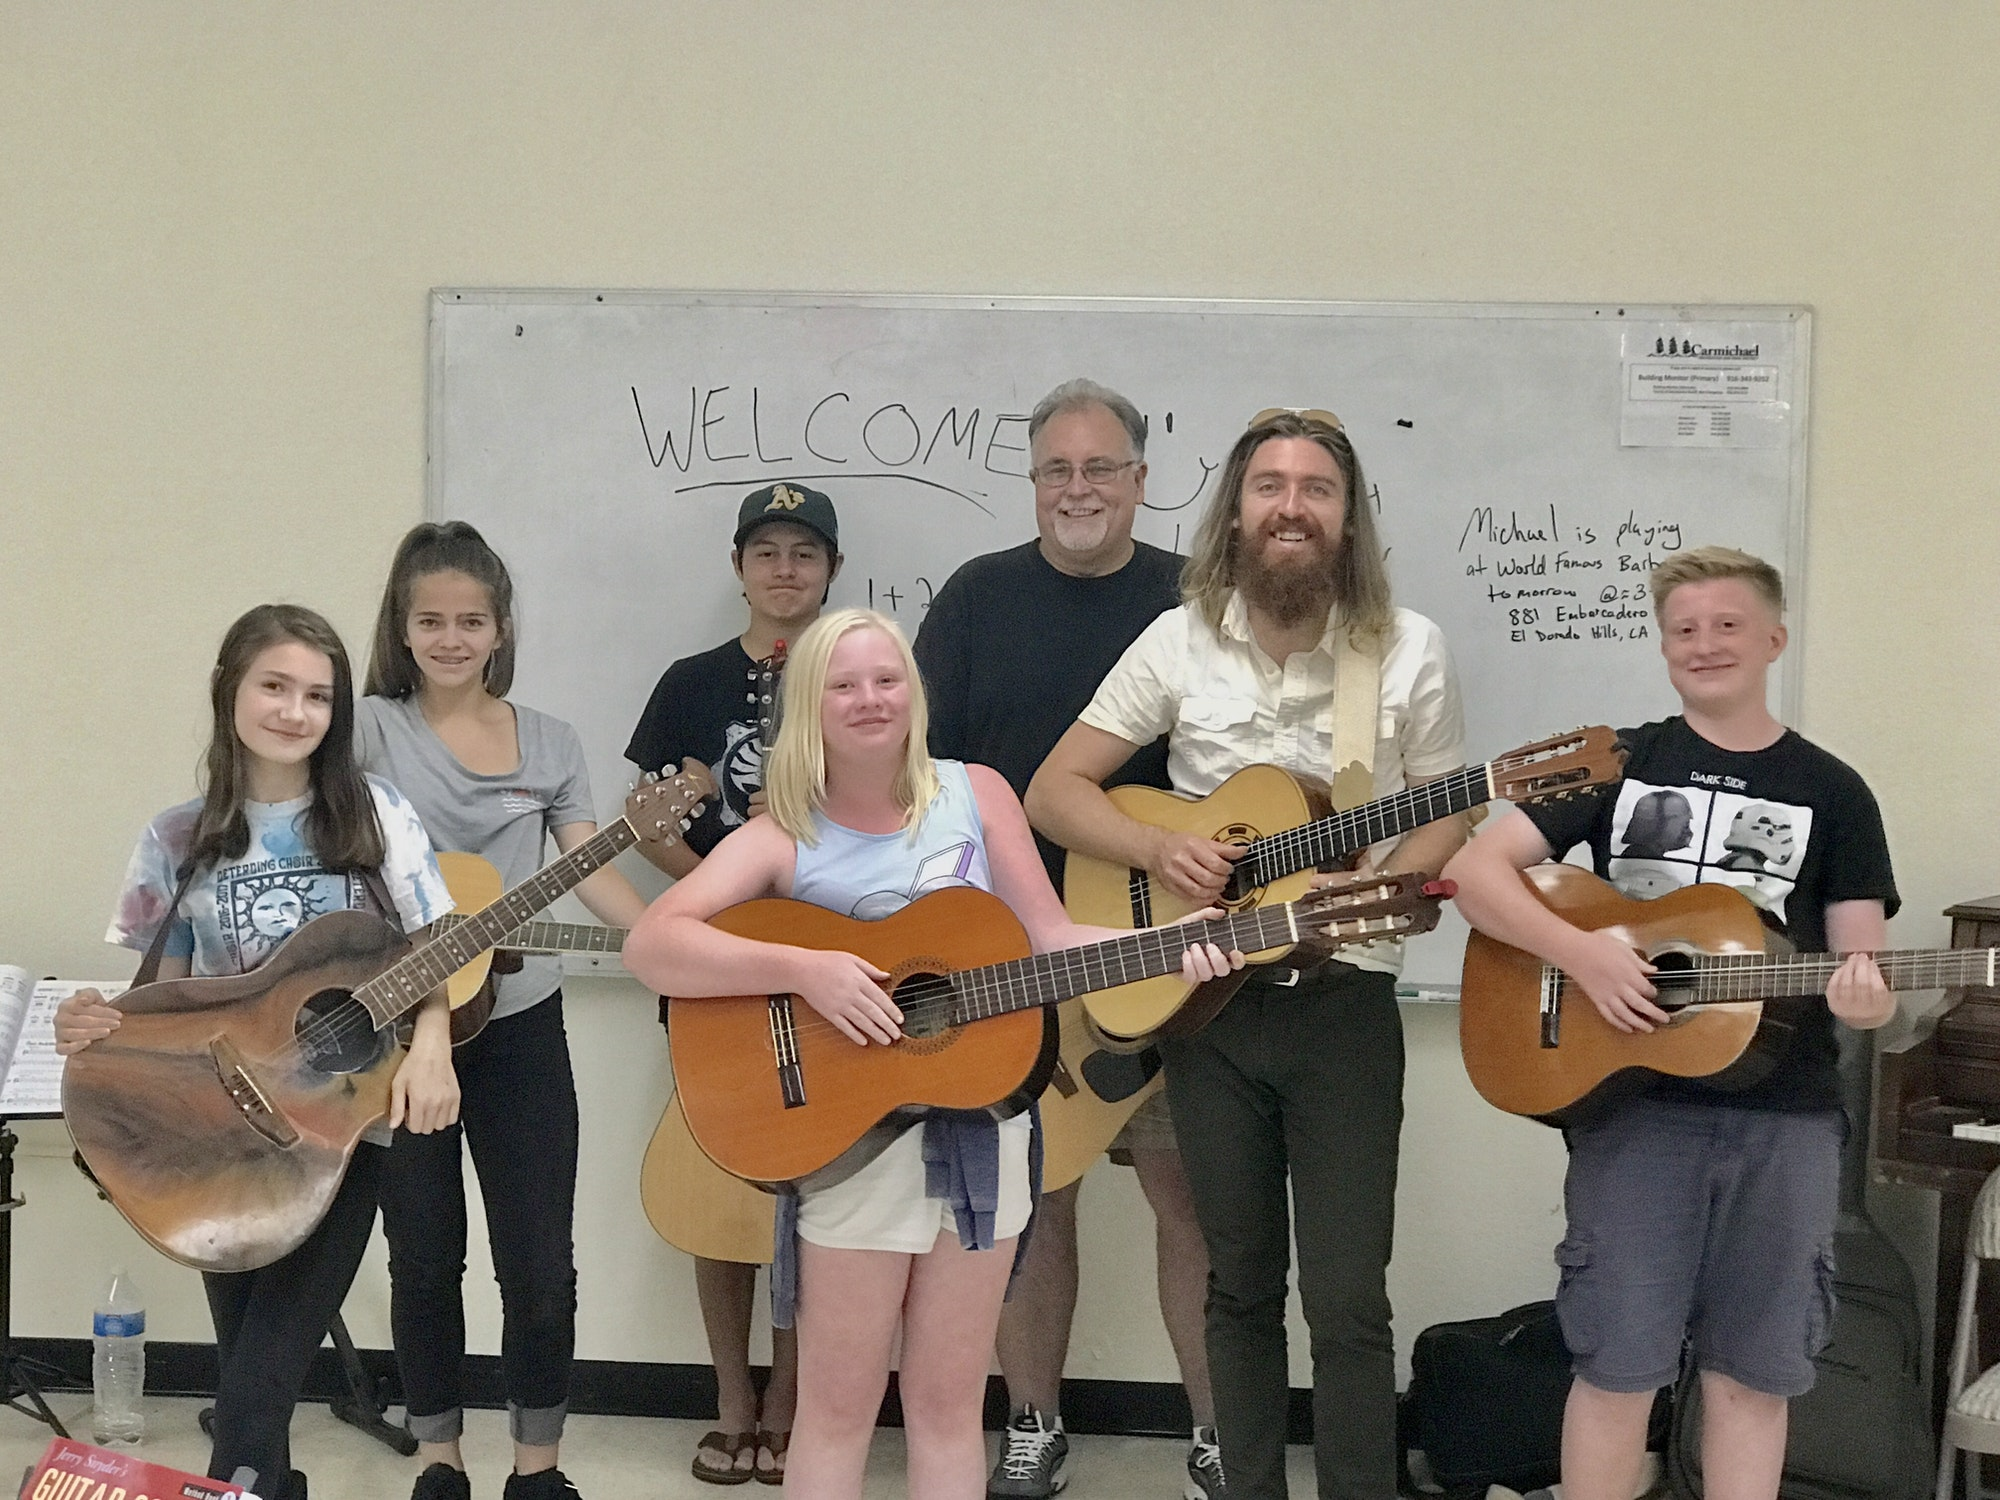 Guitar class: Six students and one instructor all holding their guitars.